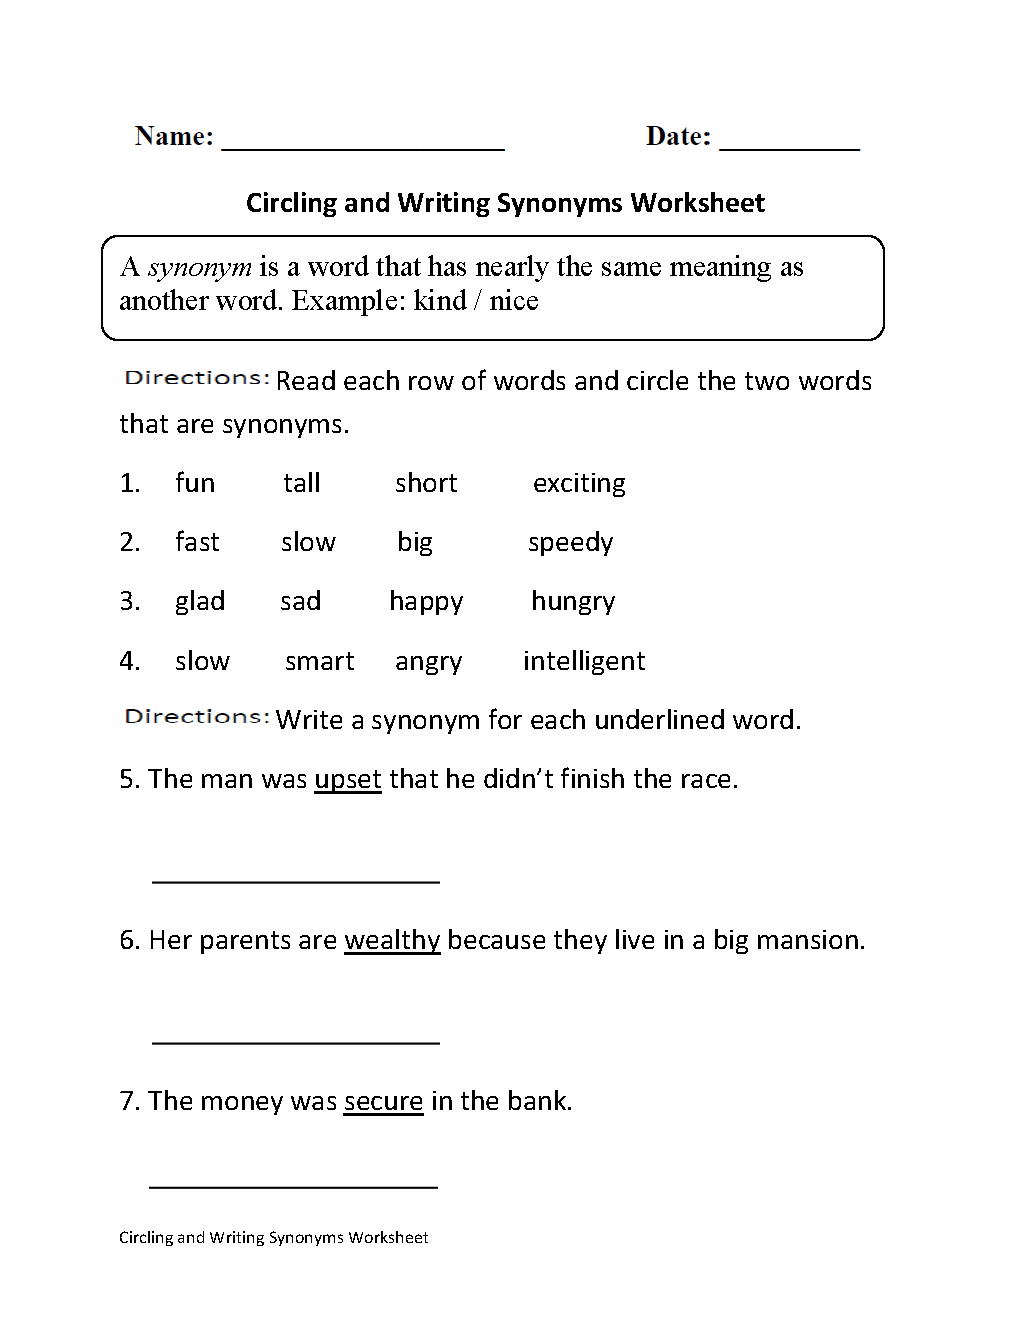 Worksheets Synonym Worksheets englishlinx com synonyms worksheets worksheet